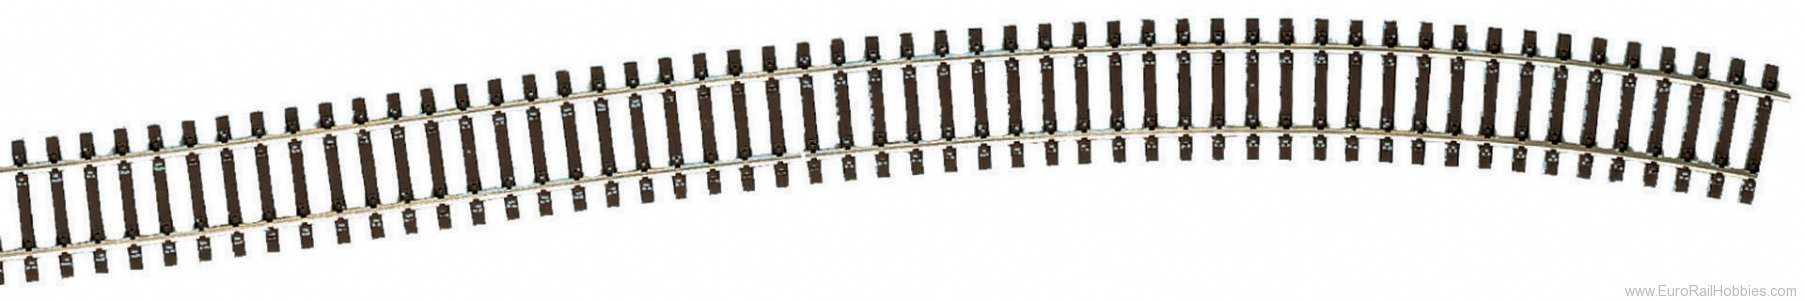 Roco 42400 H0/83 Flextrack with Wooden Ties (1)